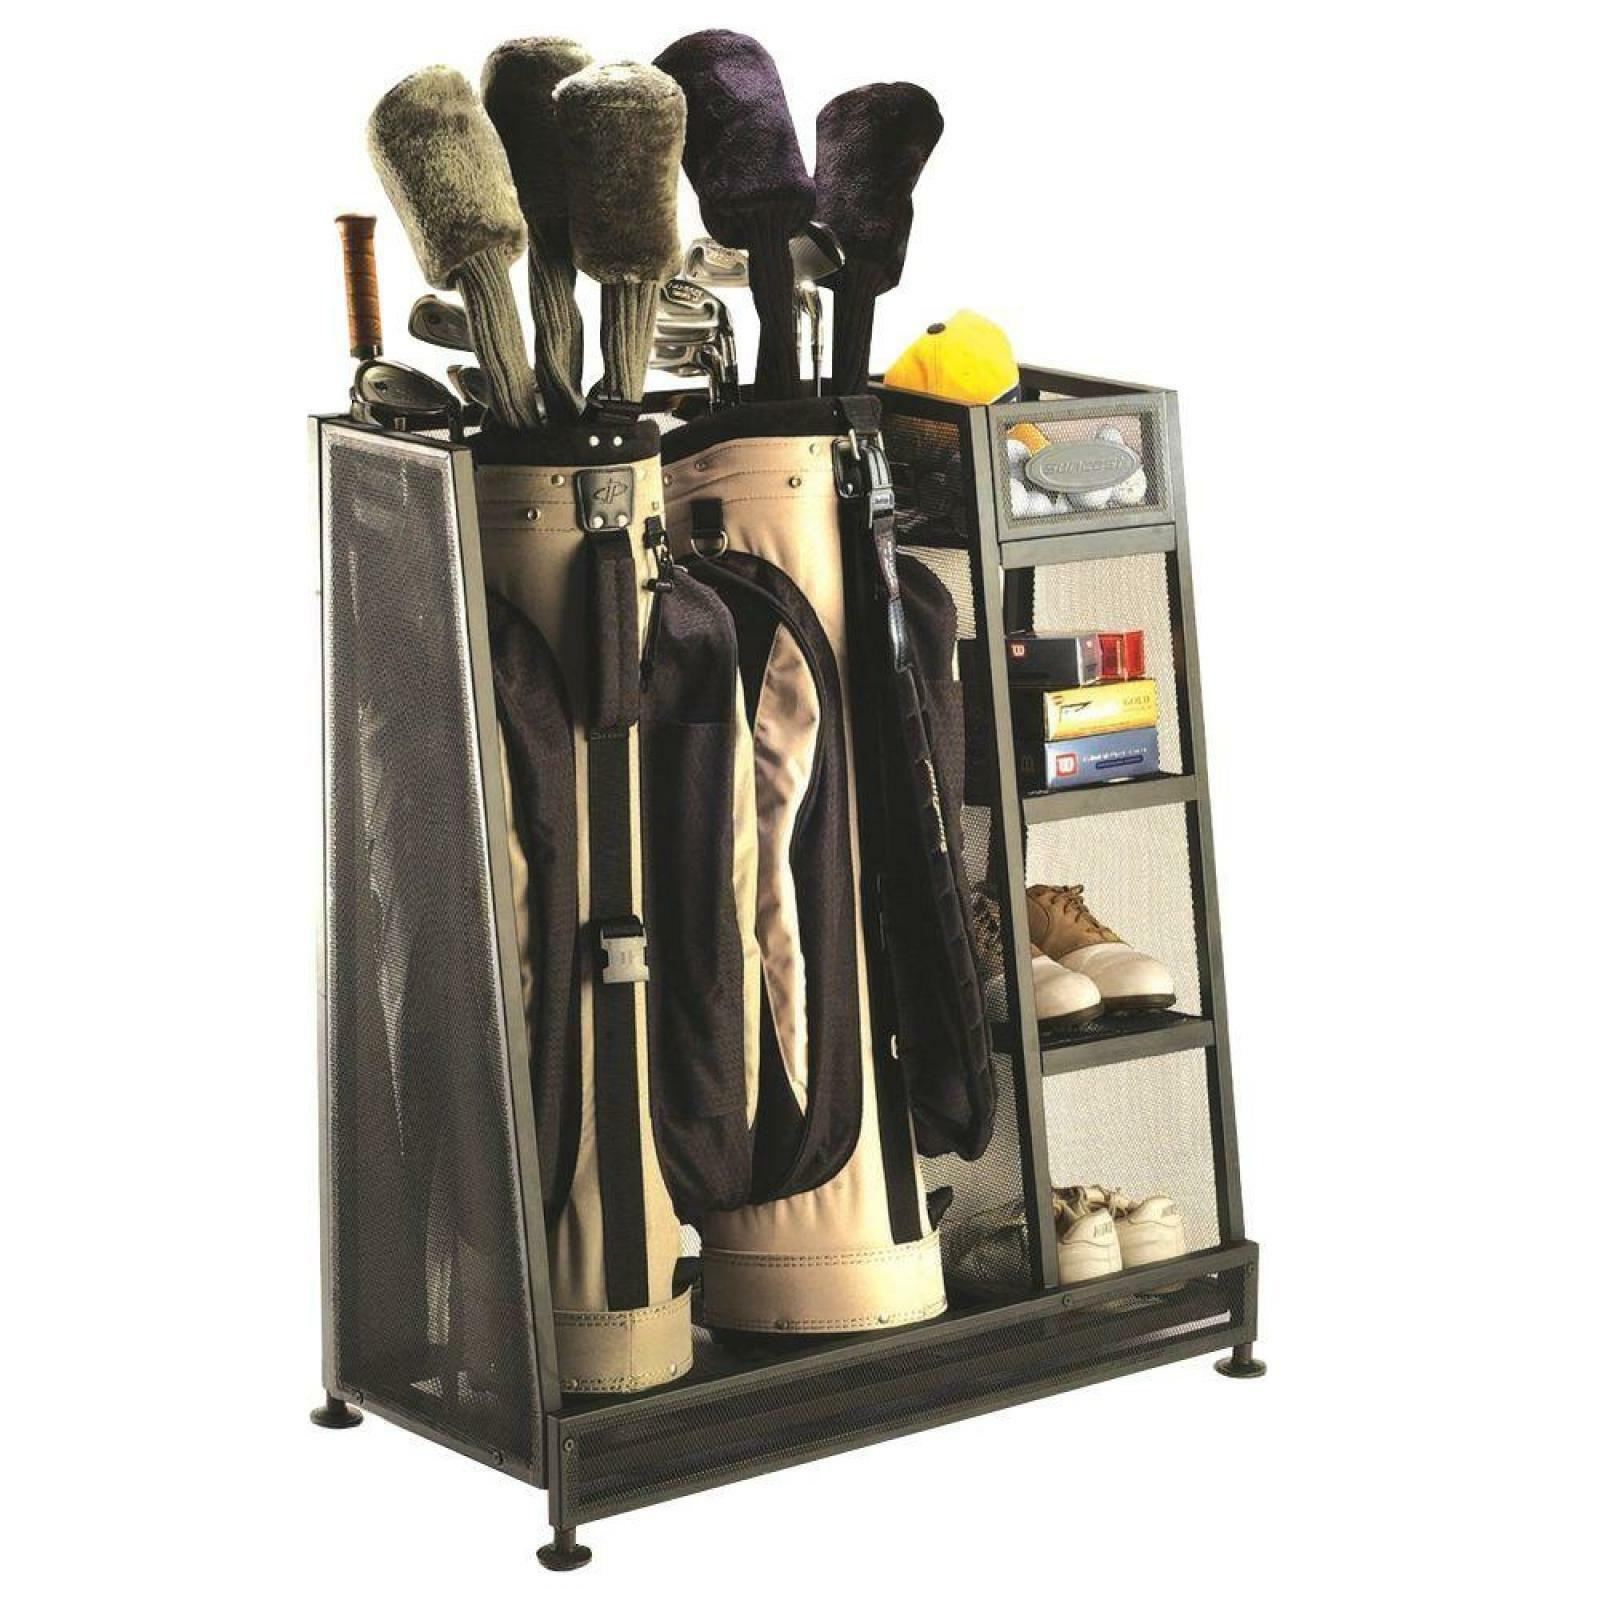 Details About Golf Bag Organizer Gear Storage Two Bags Capacity Leveling Feet 3 Shelves Rack